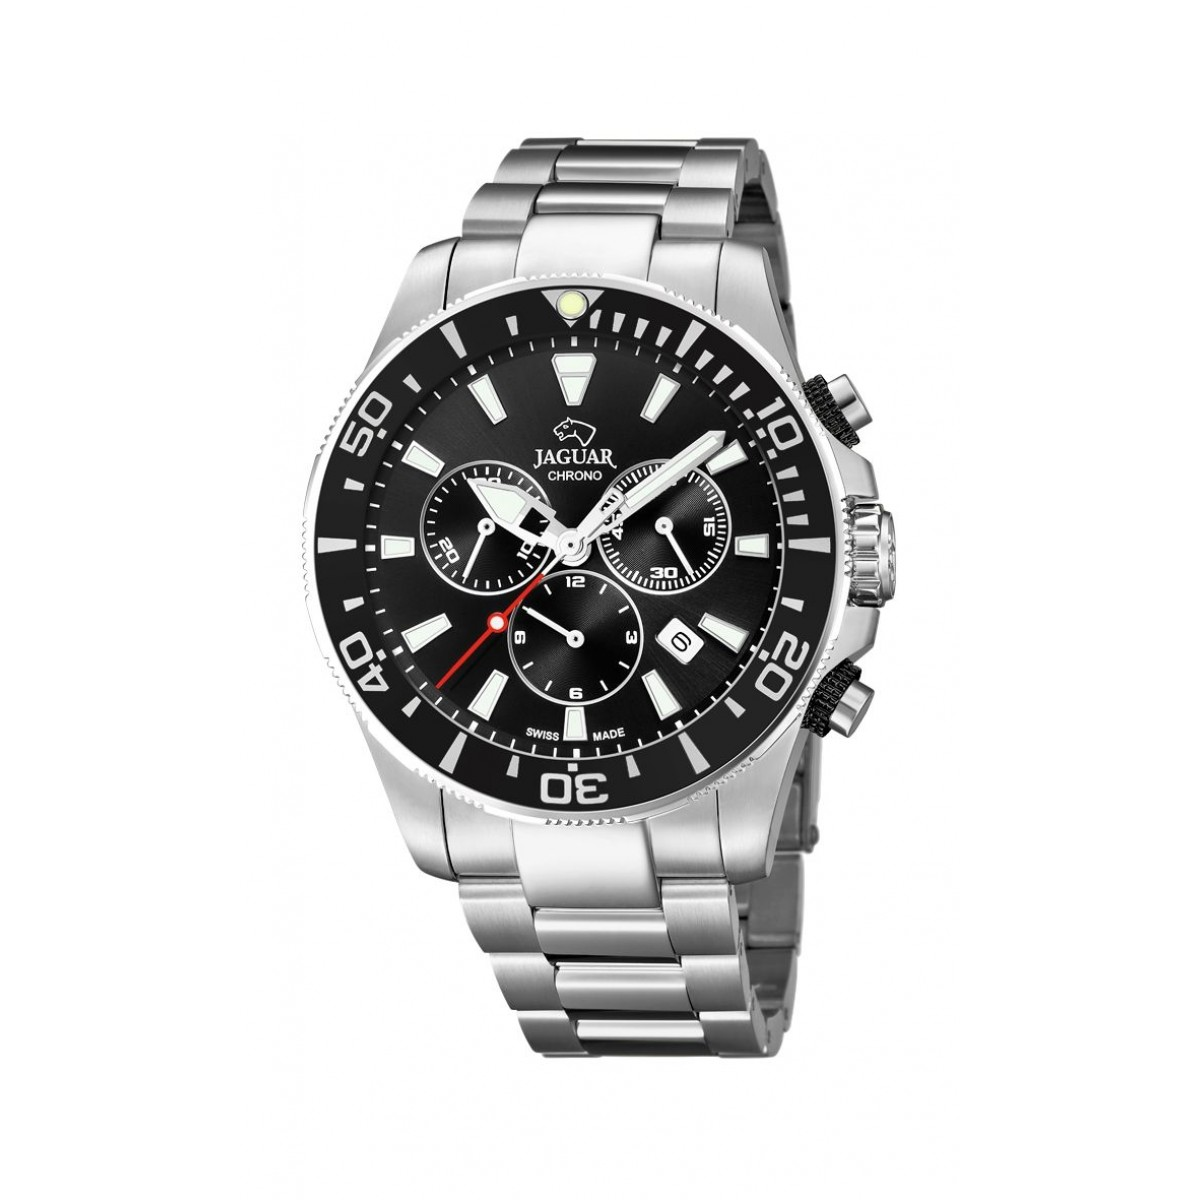 Jaguar ur Herre Executive diver chronograf - Swiss Made model 861/3